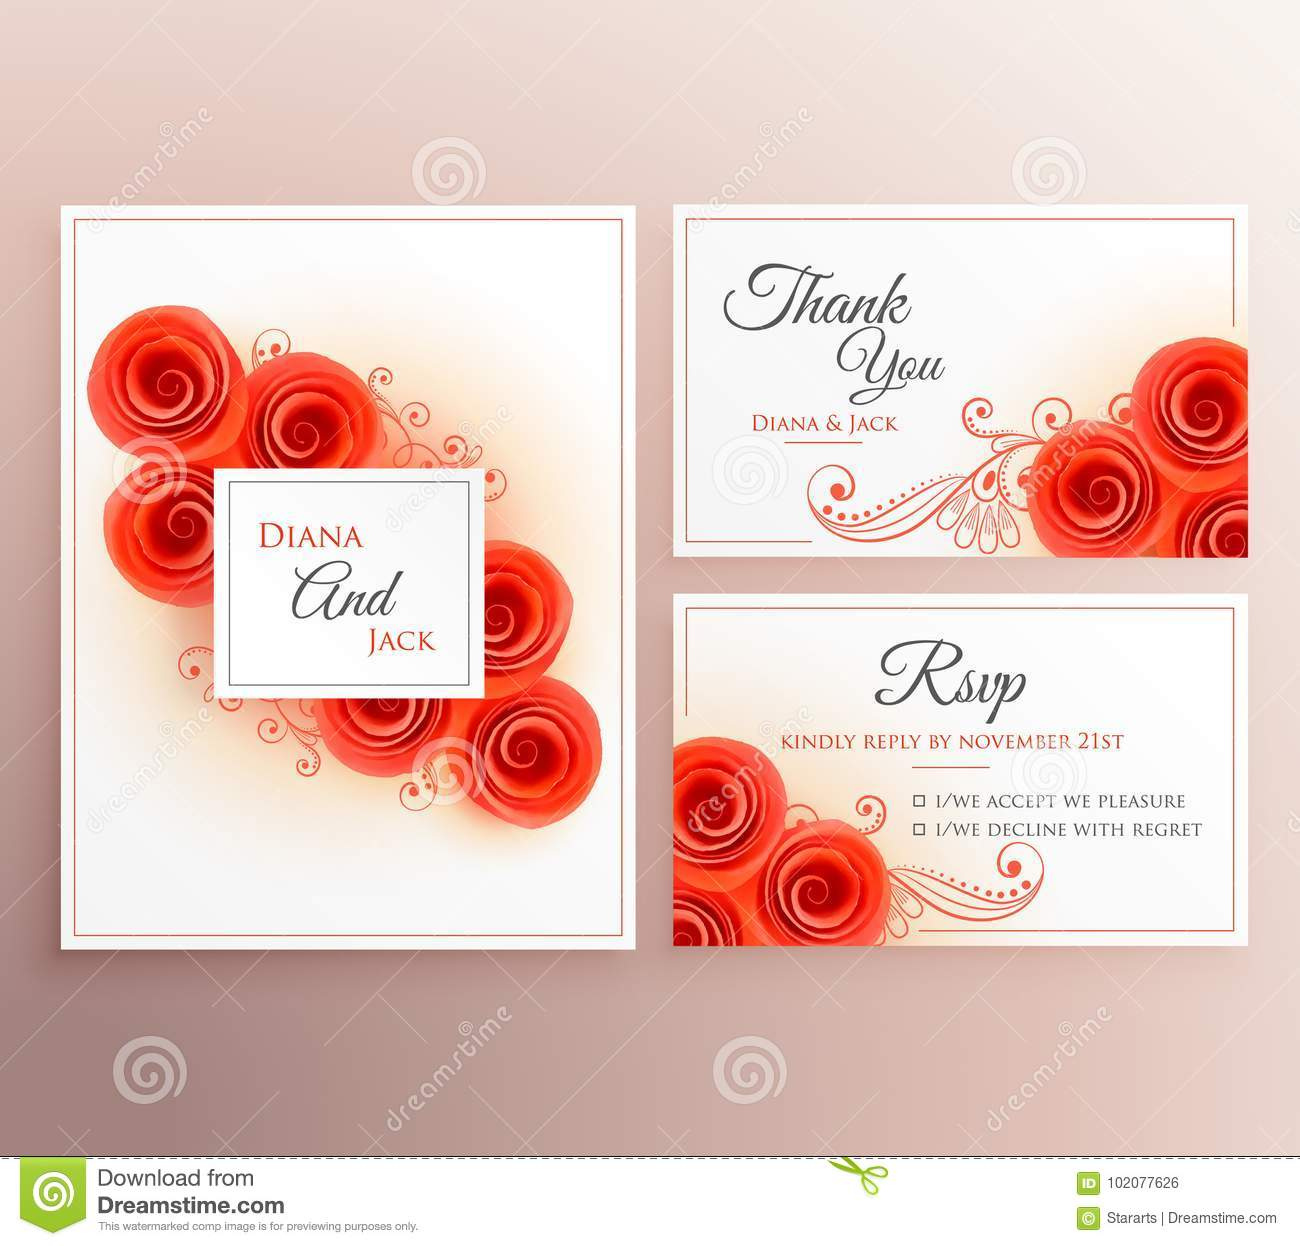 Beautiful Wedding Invitation Card With Rose Flower Template Stock ...